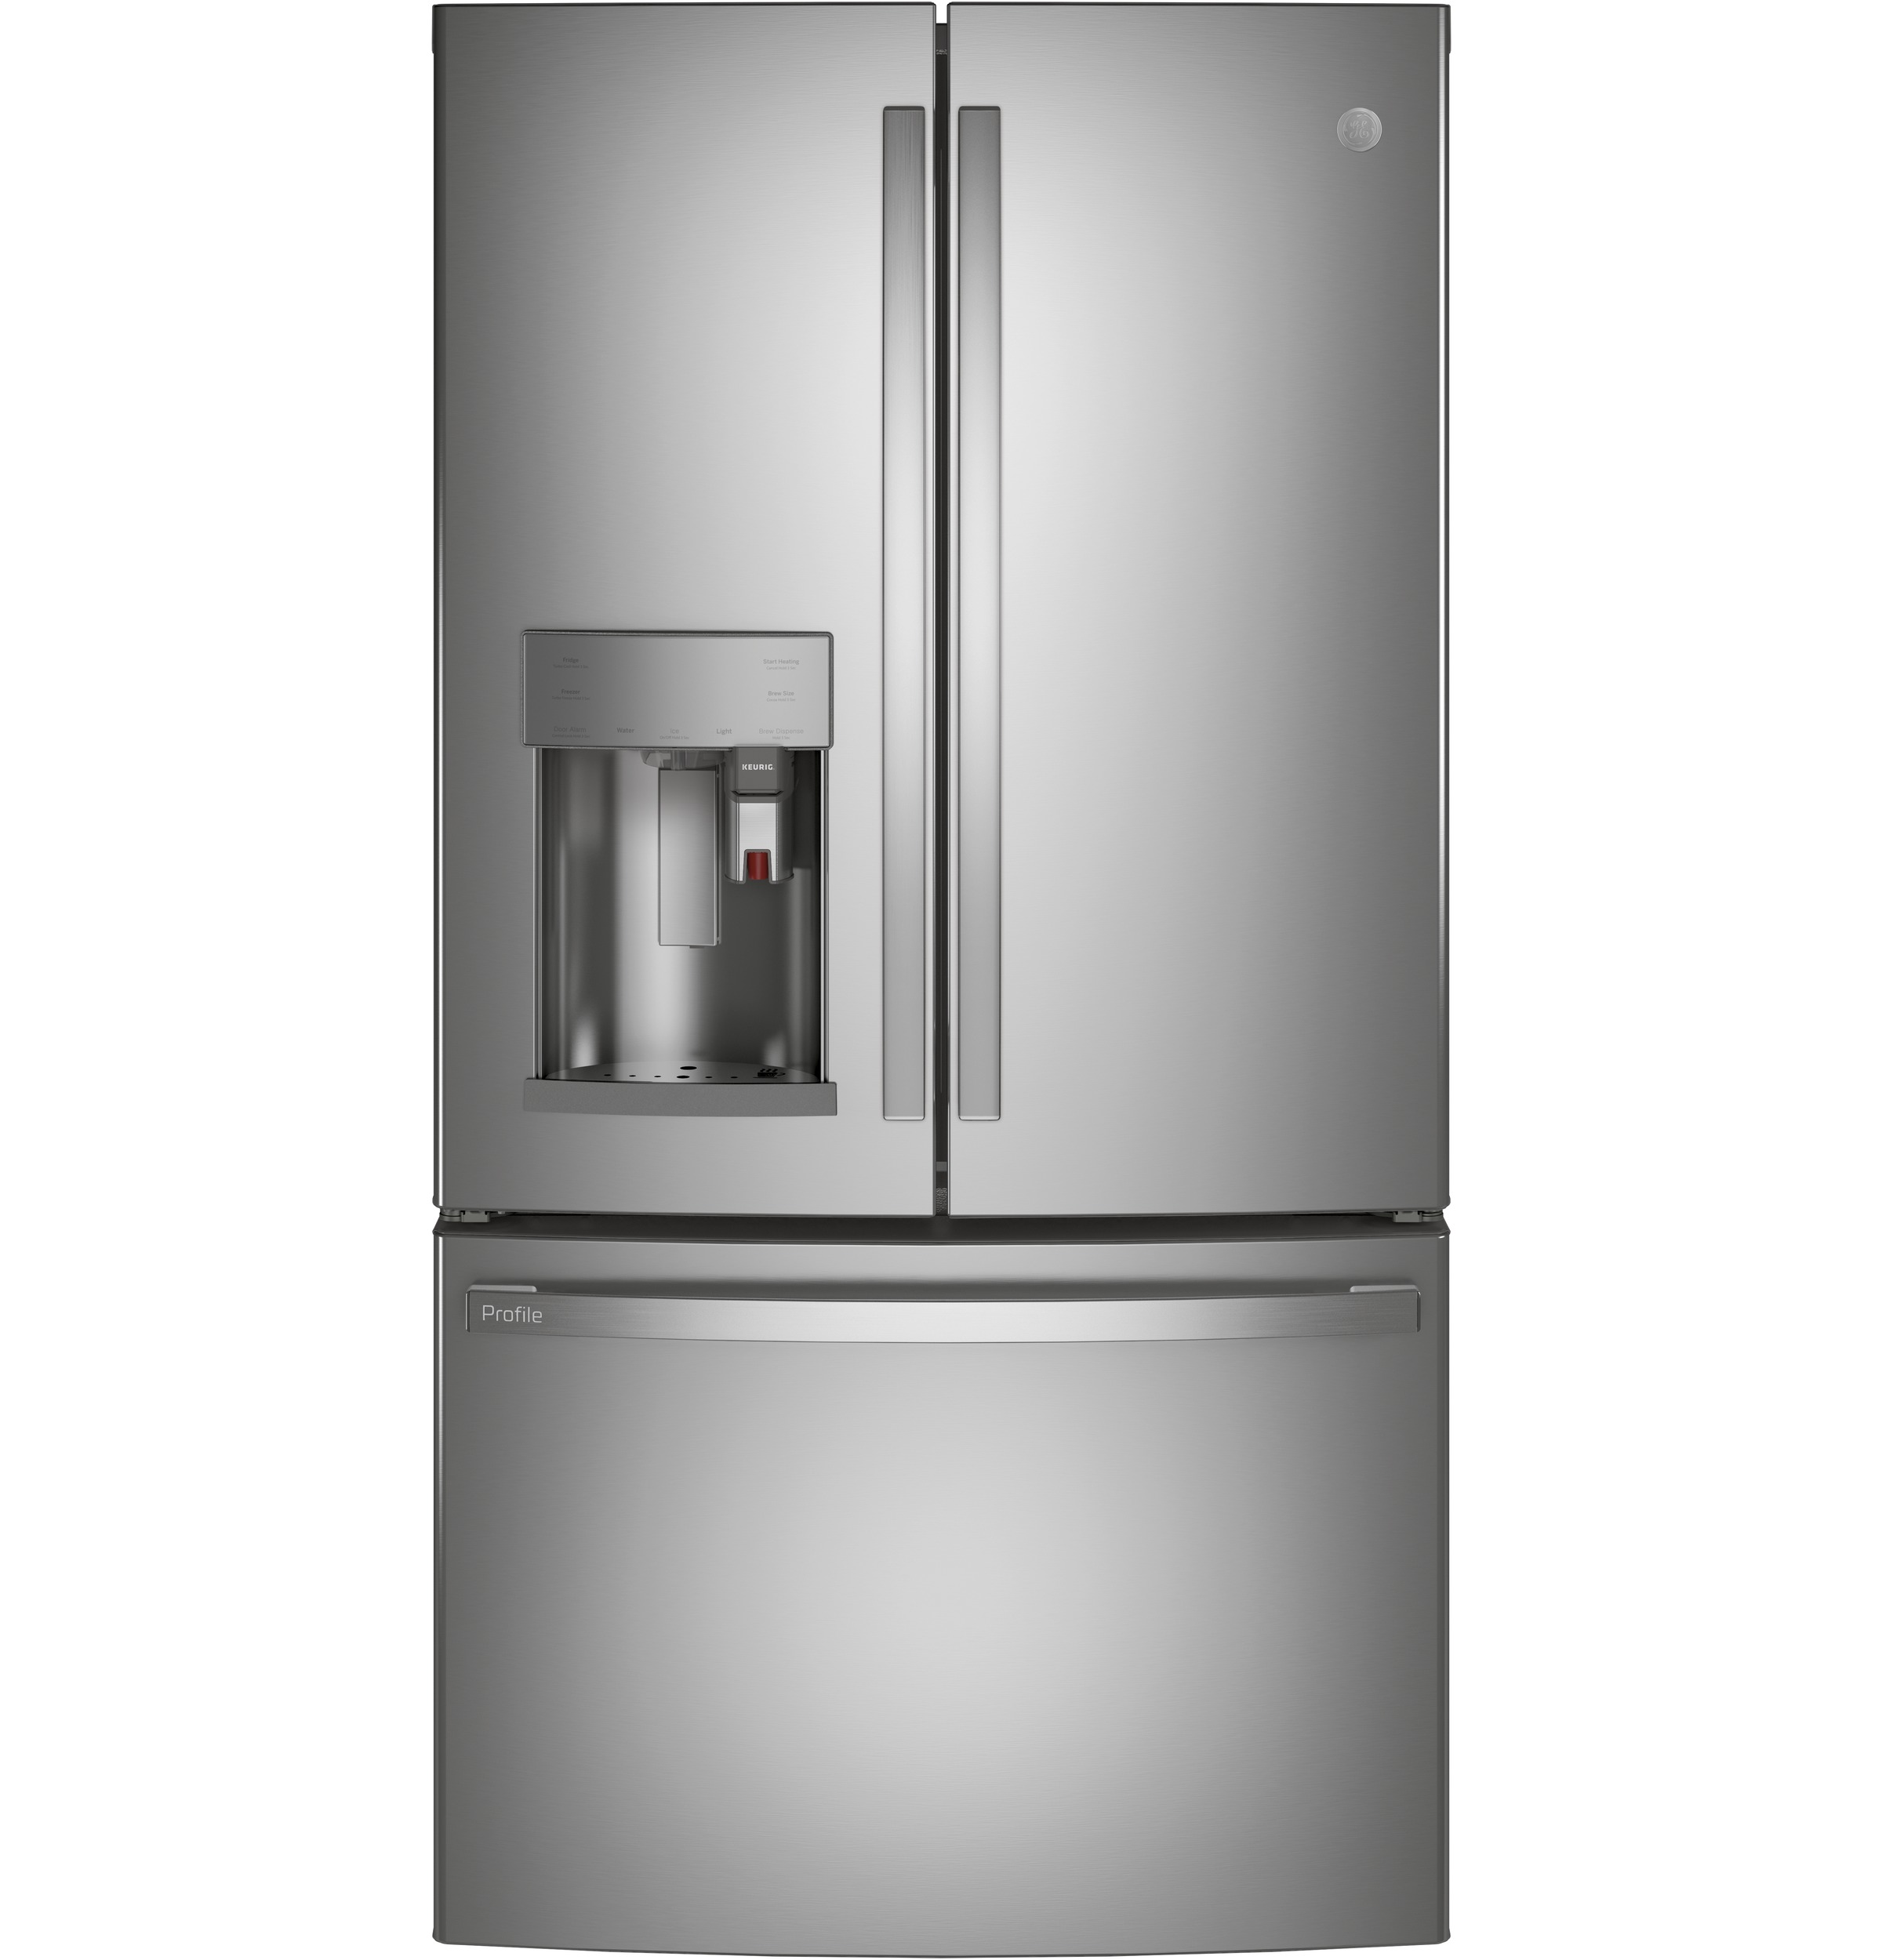 GE Profile GE Profile™ Series ENERGY STAR® 22.1 Cu. Ft. Smart Counter-Depth French-Door Refrigerator with Keurig® K-Cup® Brewing System